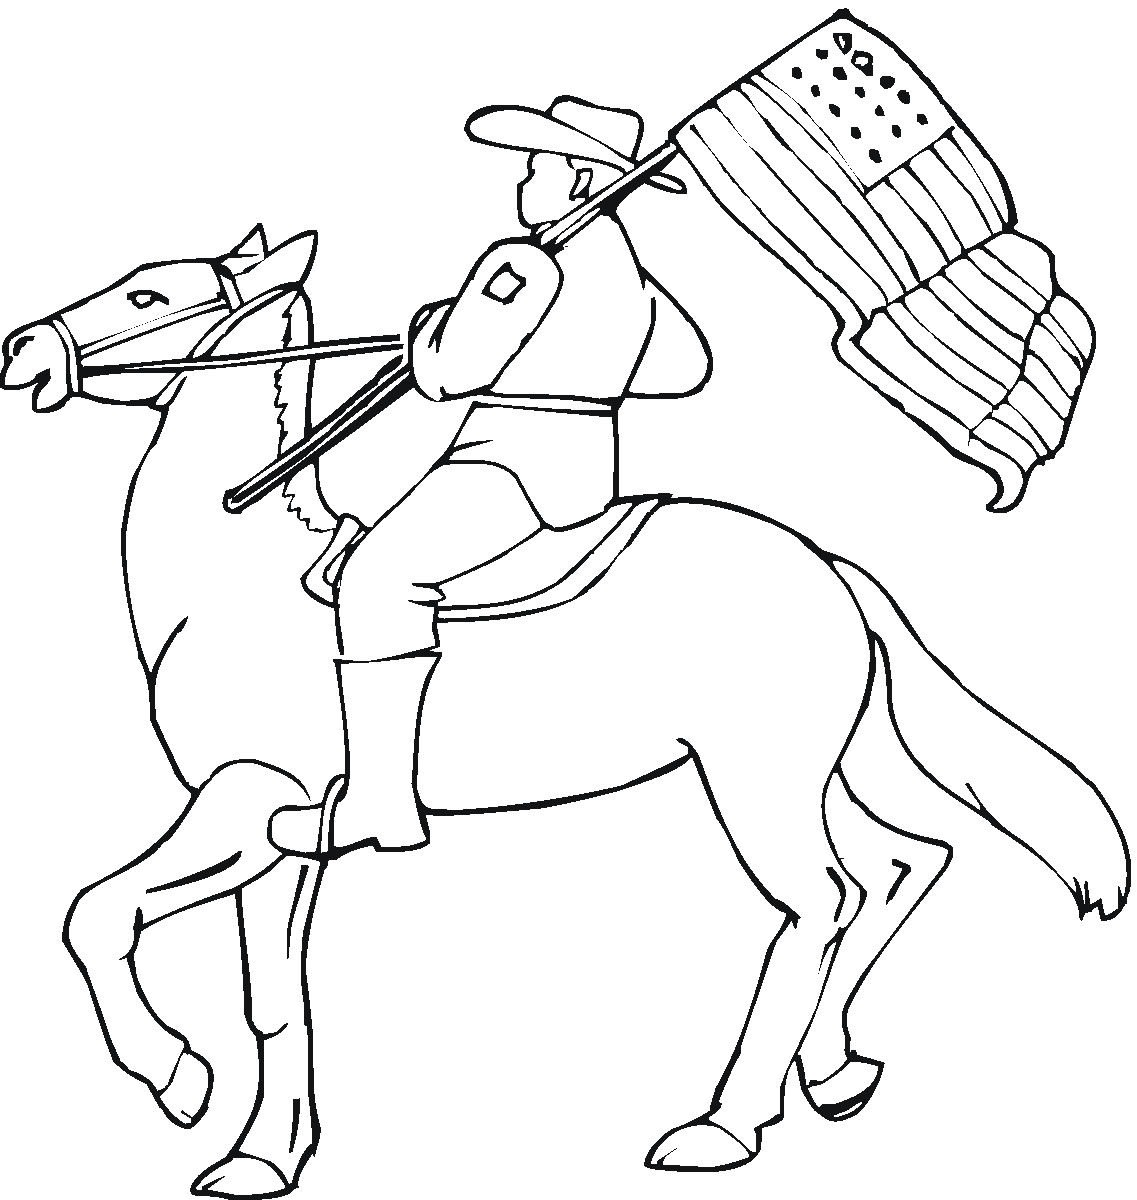 Cowboy on horseback at rodeo with American Flag. Western Cowboy Kids Coloring Pages and Free Colouring Pictures to Print